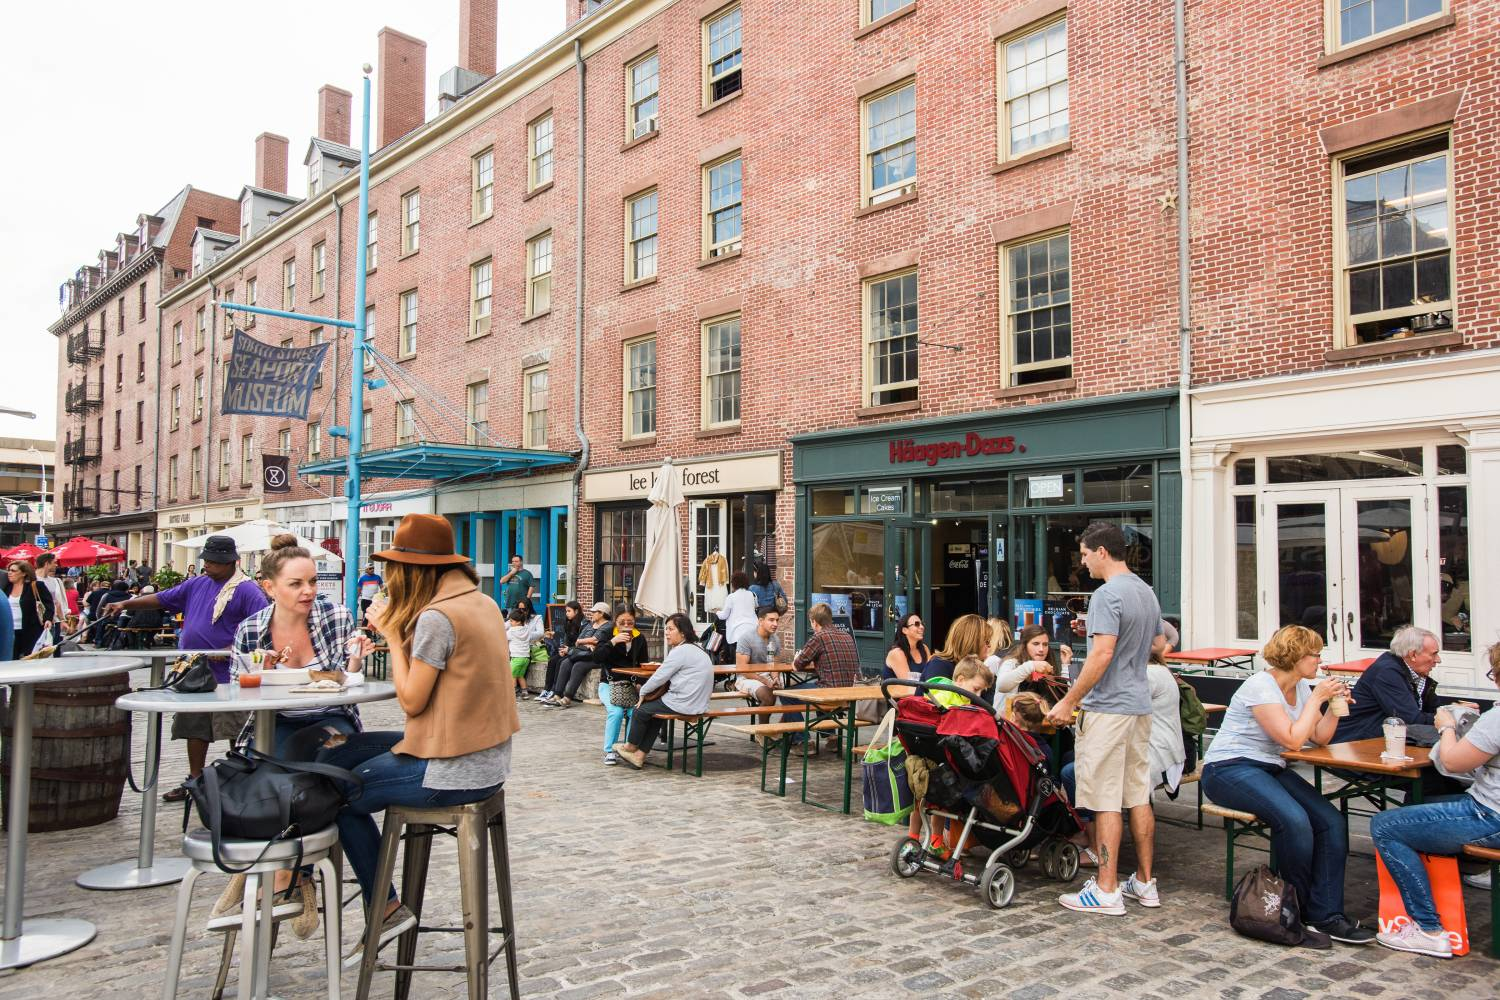 Shopping and outdoor dining at South Street Seaport